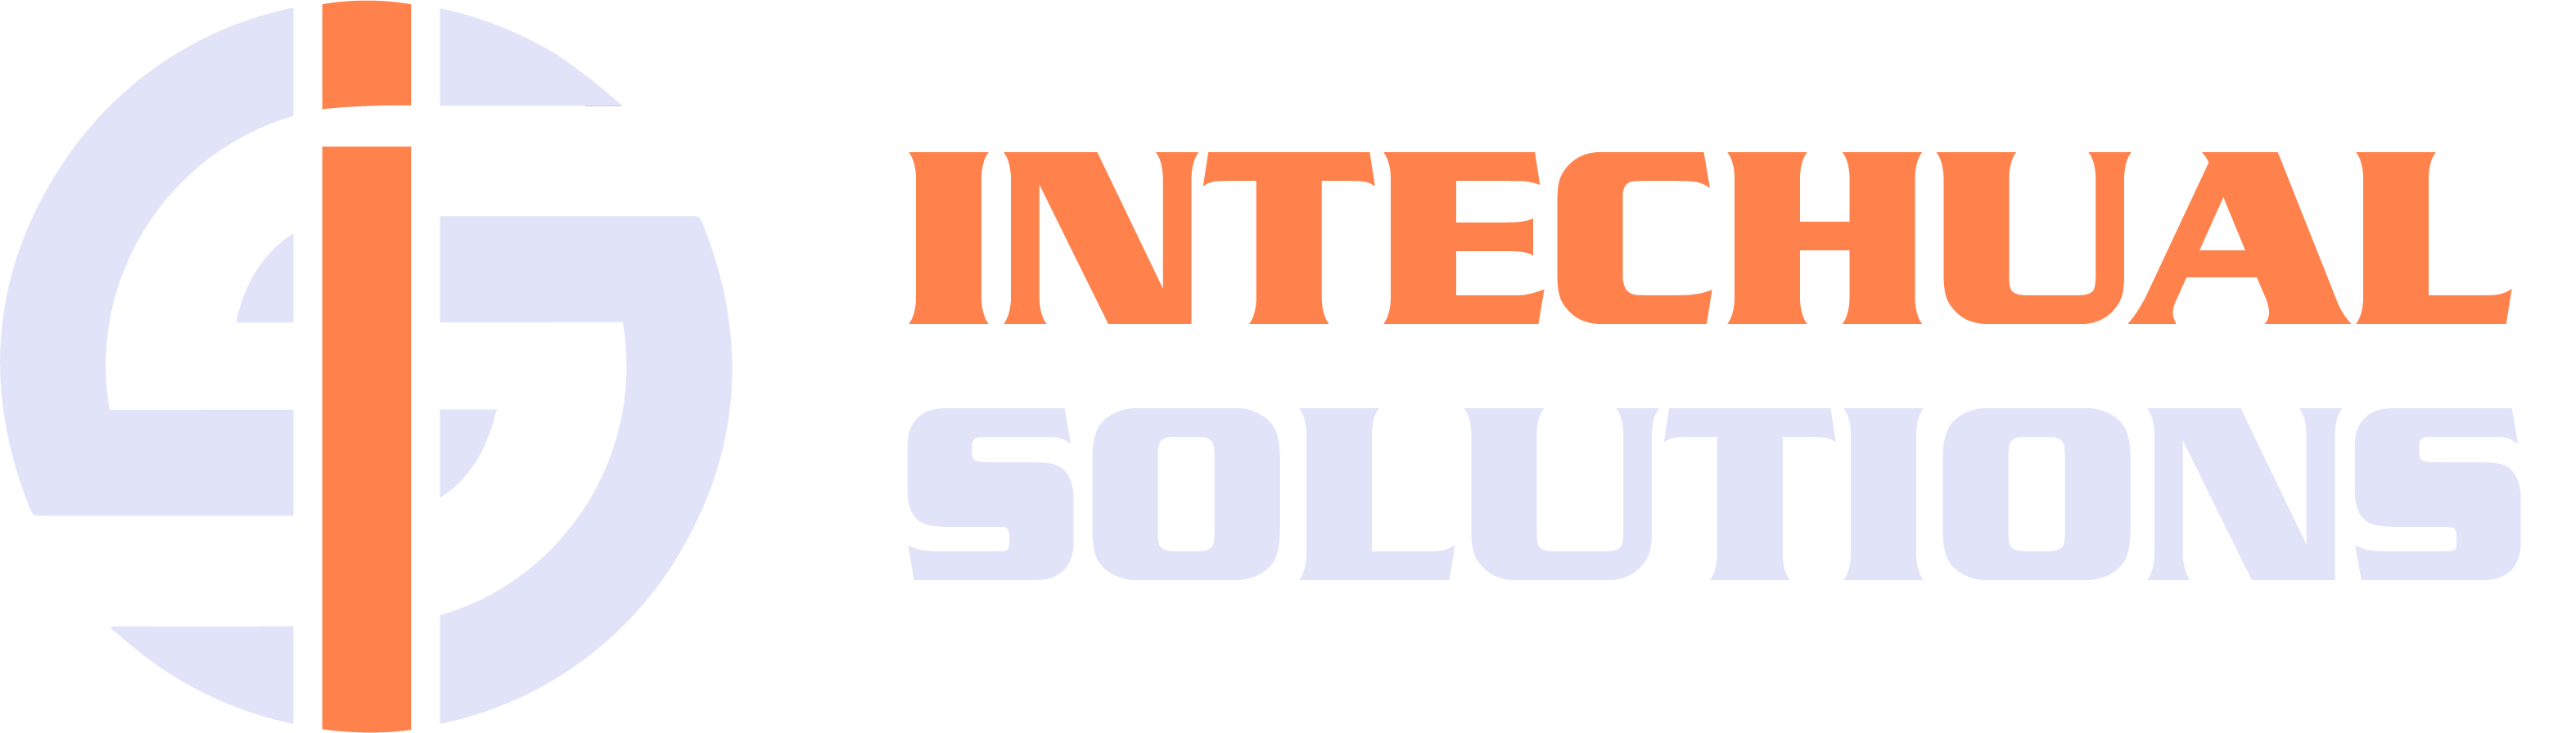 InTechual Solutions